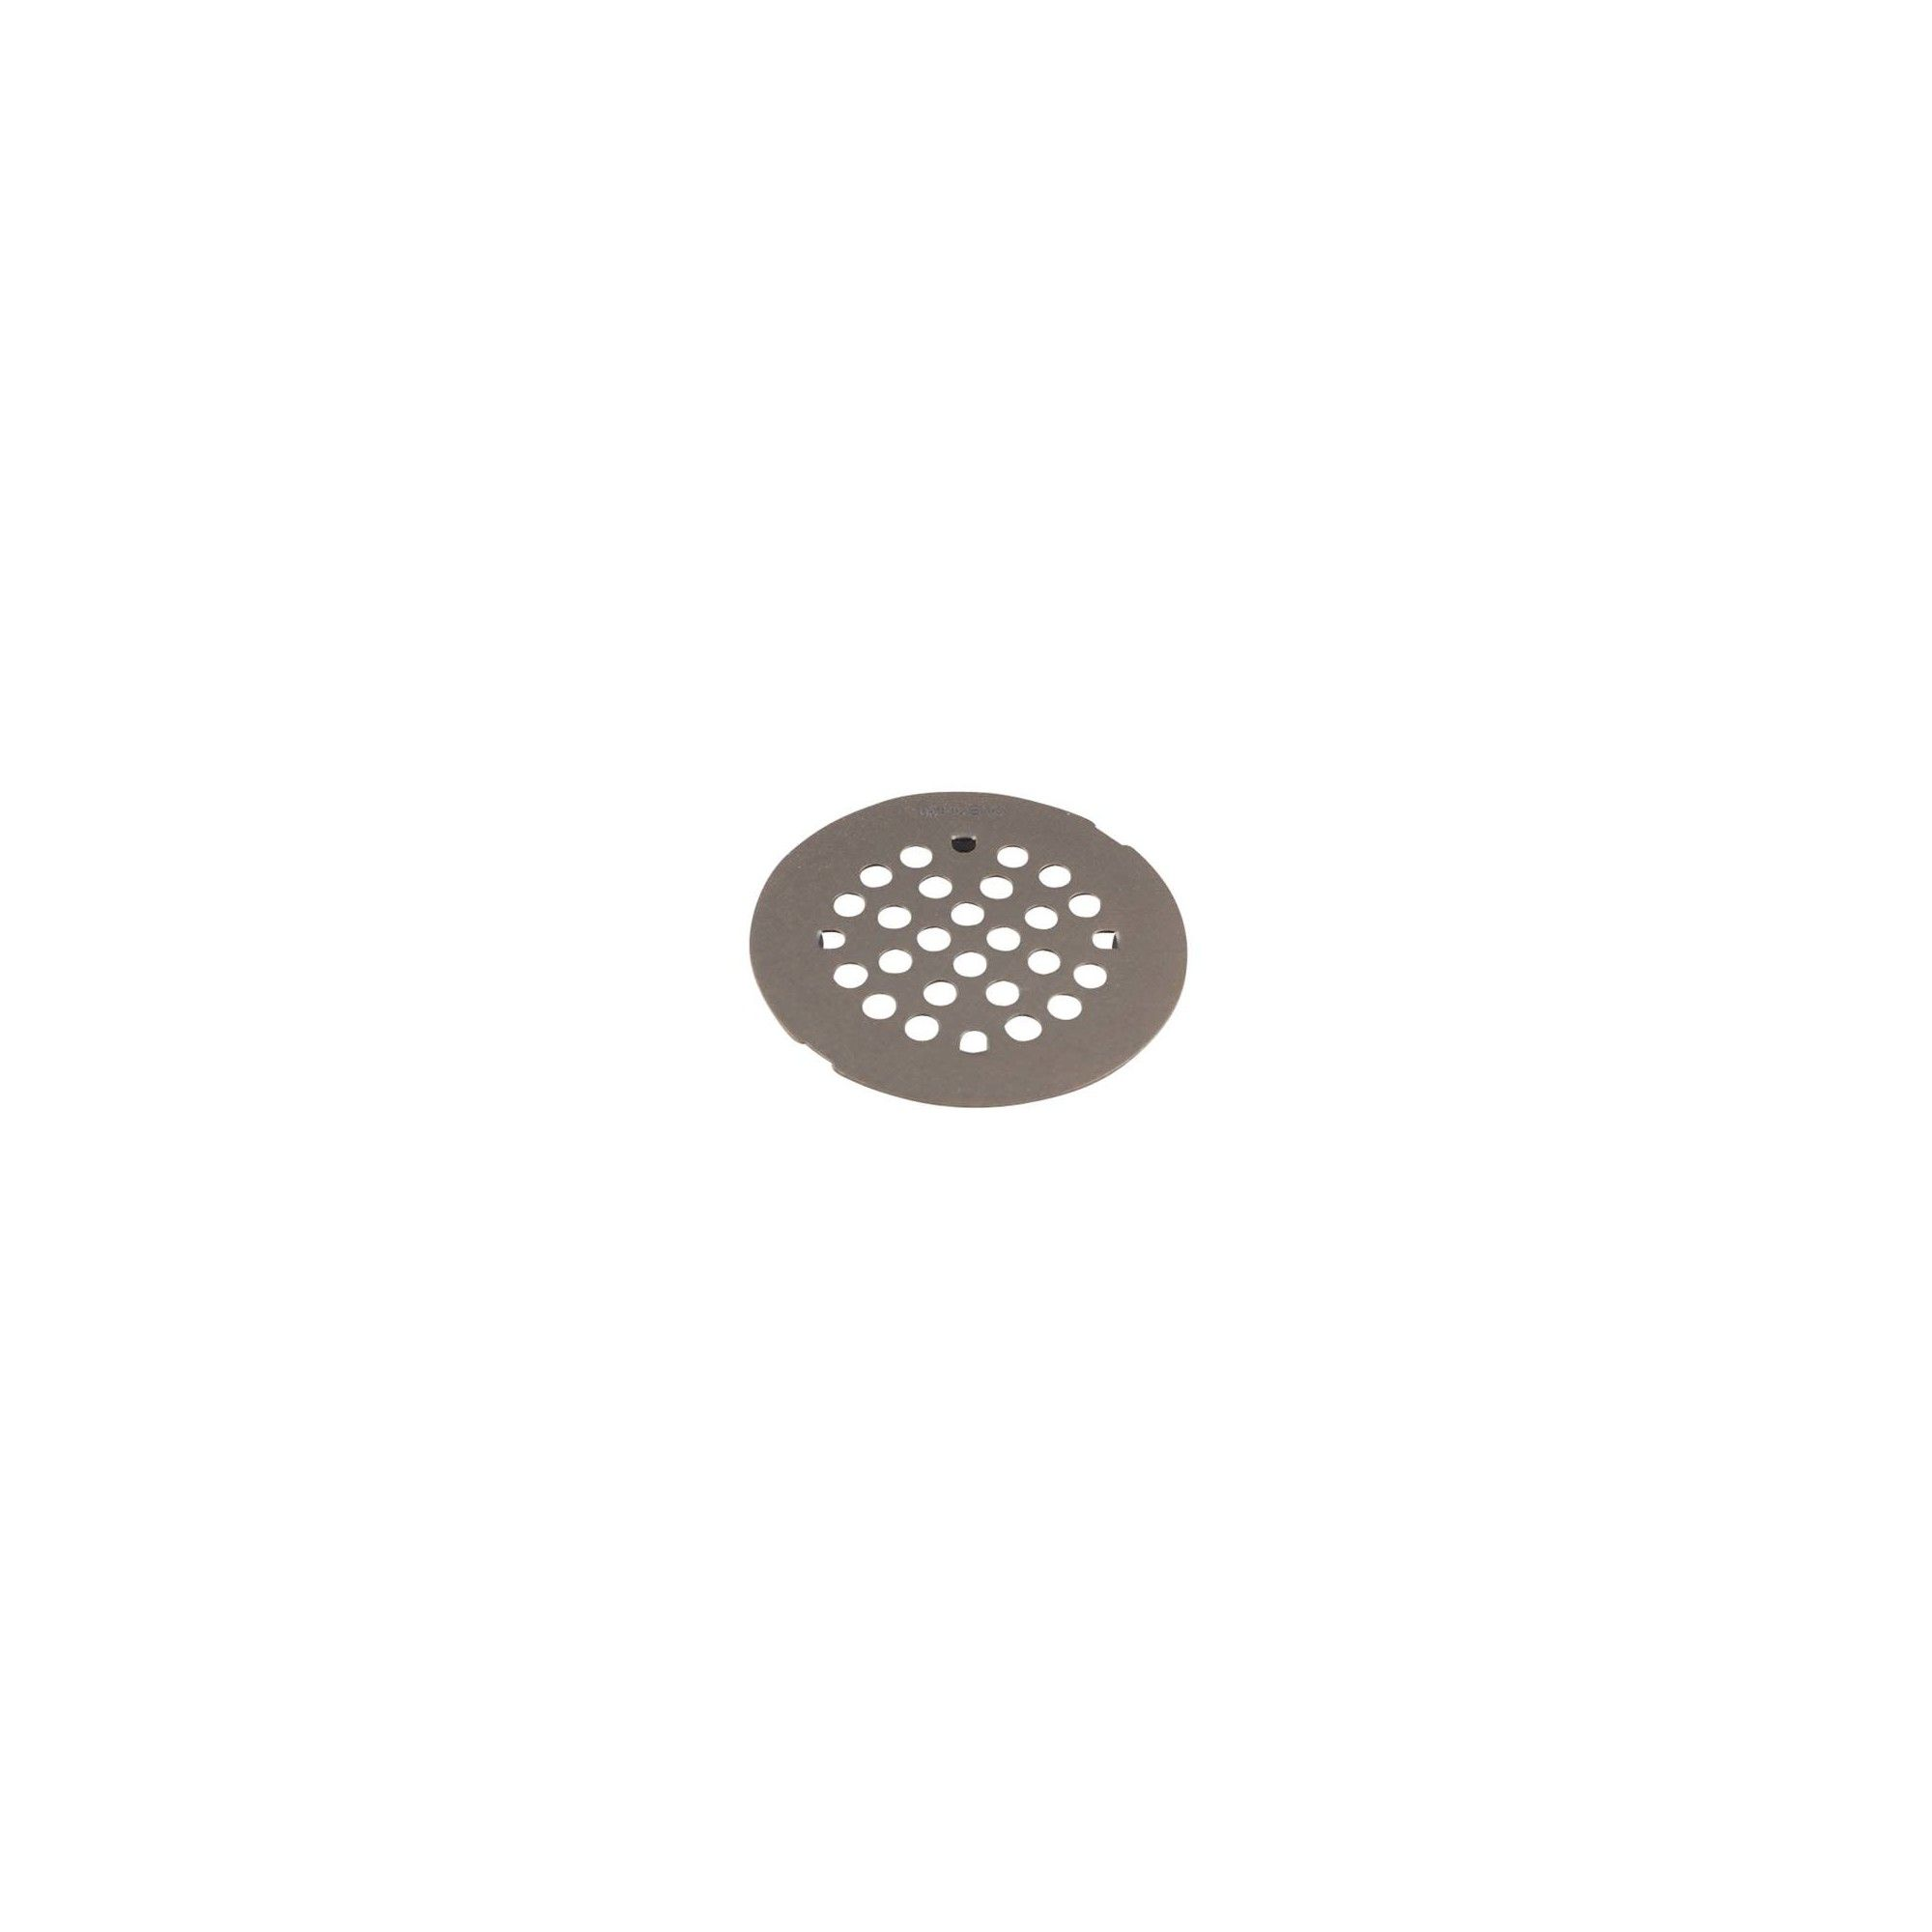 Moen 101663 4 1 4 Round Shower Drain Cover With Snap In